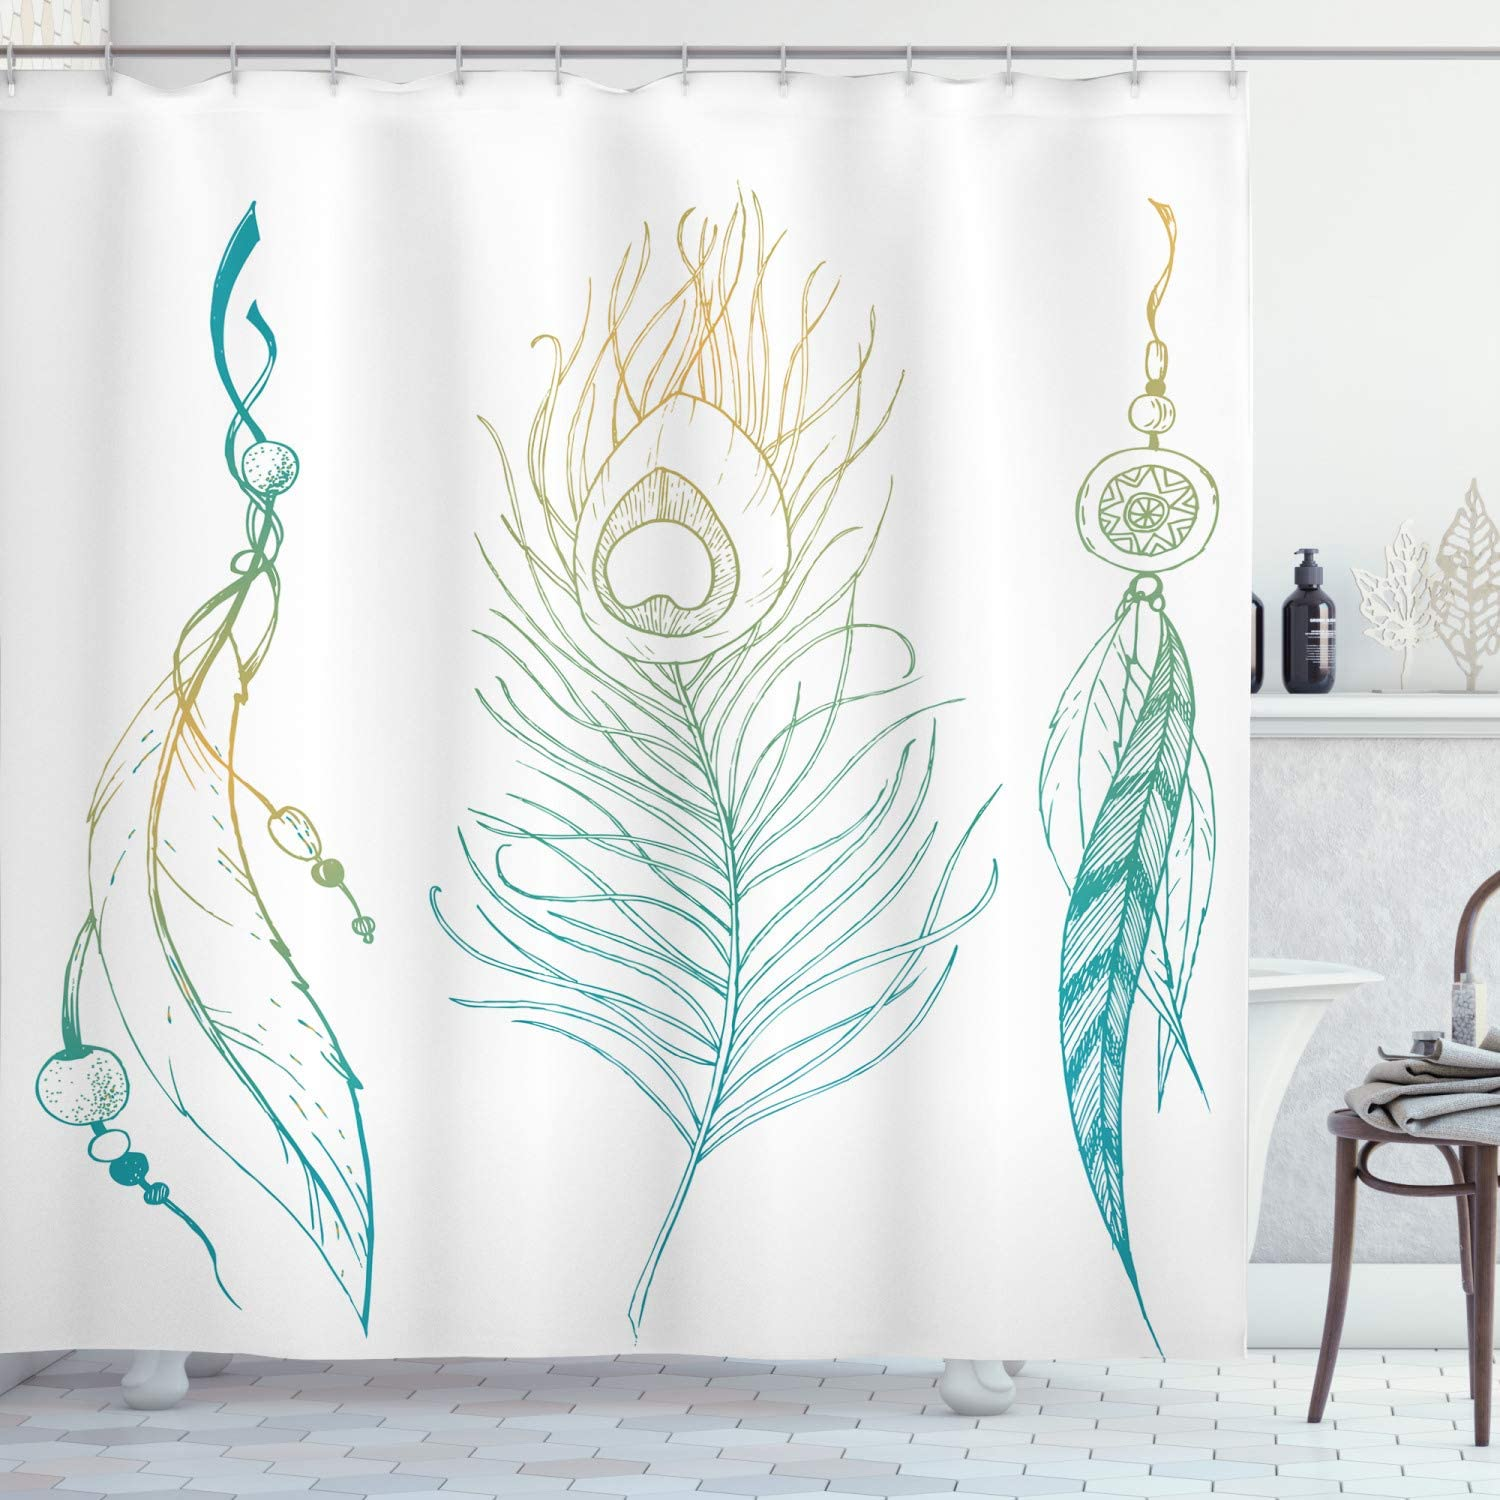 Ambesonne Peacock Shower Curtain, Aesthetic First Nations Feather and Peacock Tail Traditional Design Print, Cloth Fabric Bathroom Decor Set with Hooks, 70